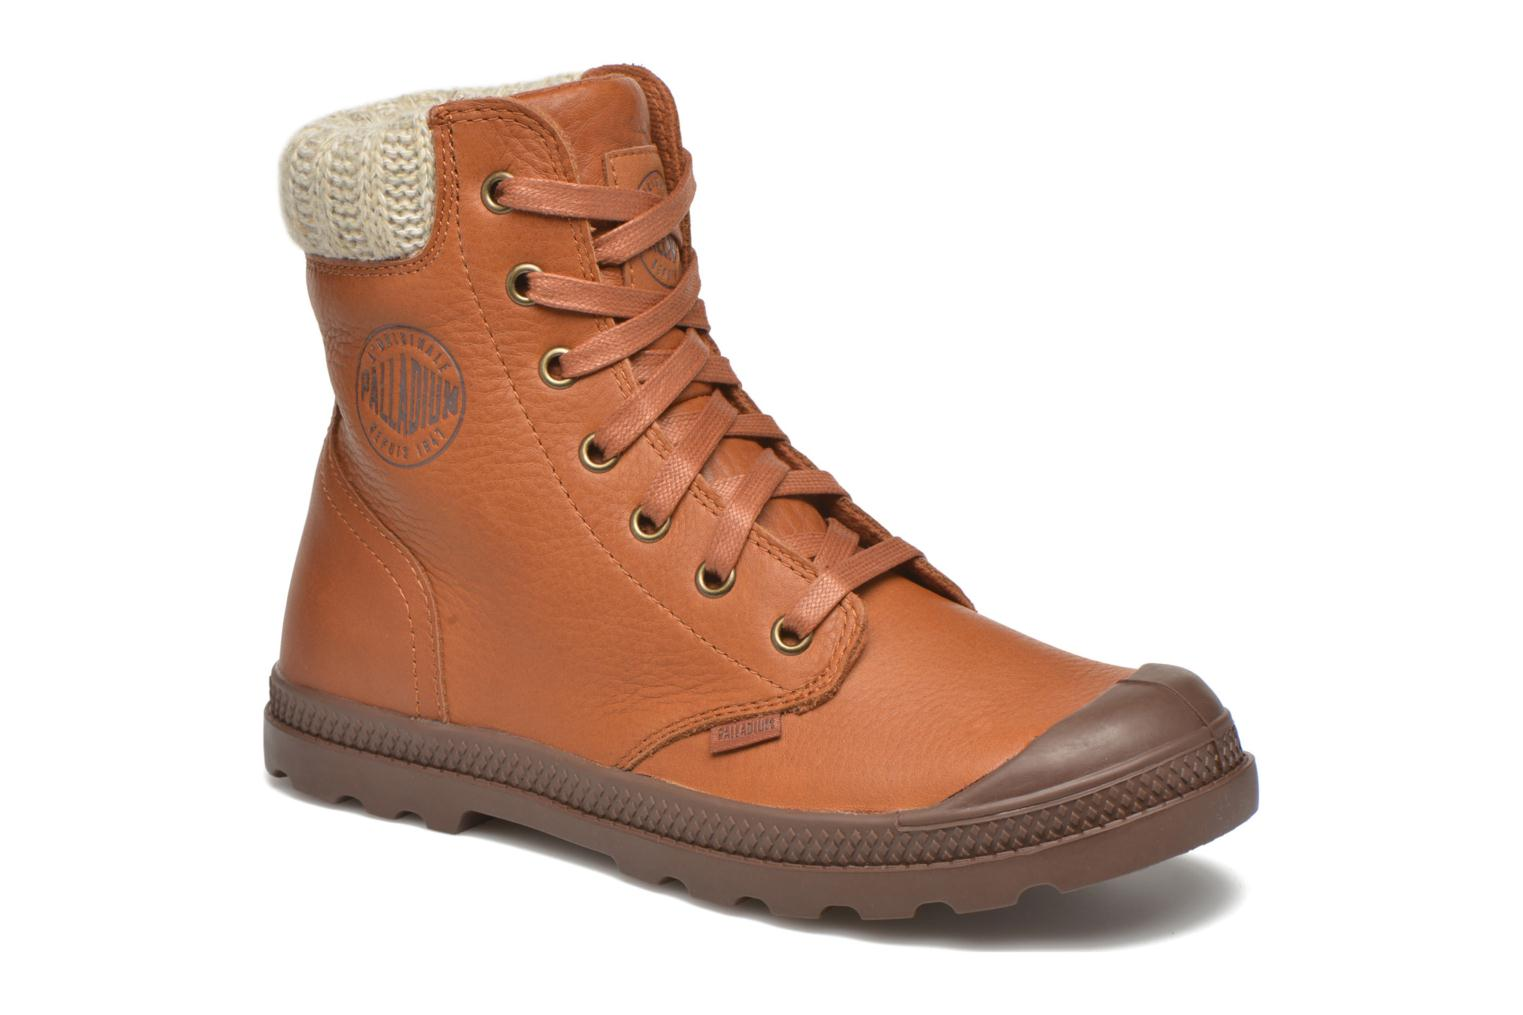 Bottines et boots Palladium Pampa Knit LP F Marron vue détail/paire